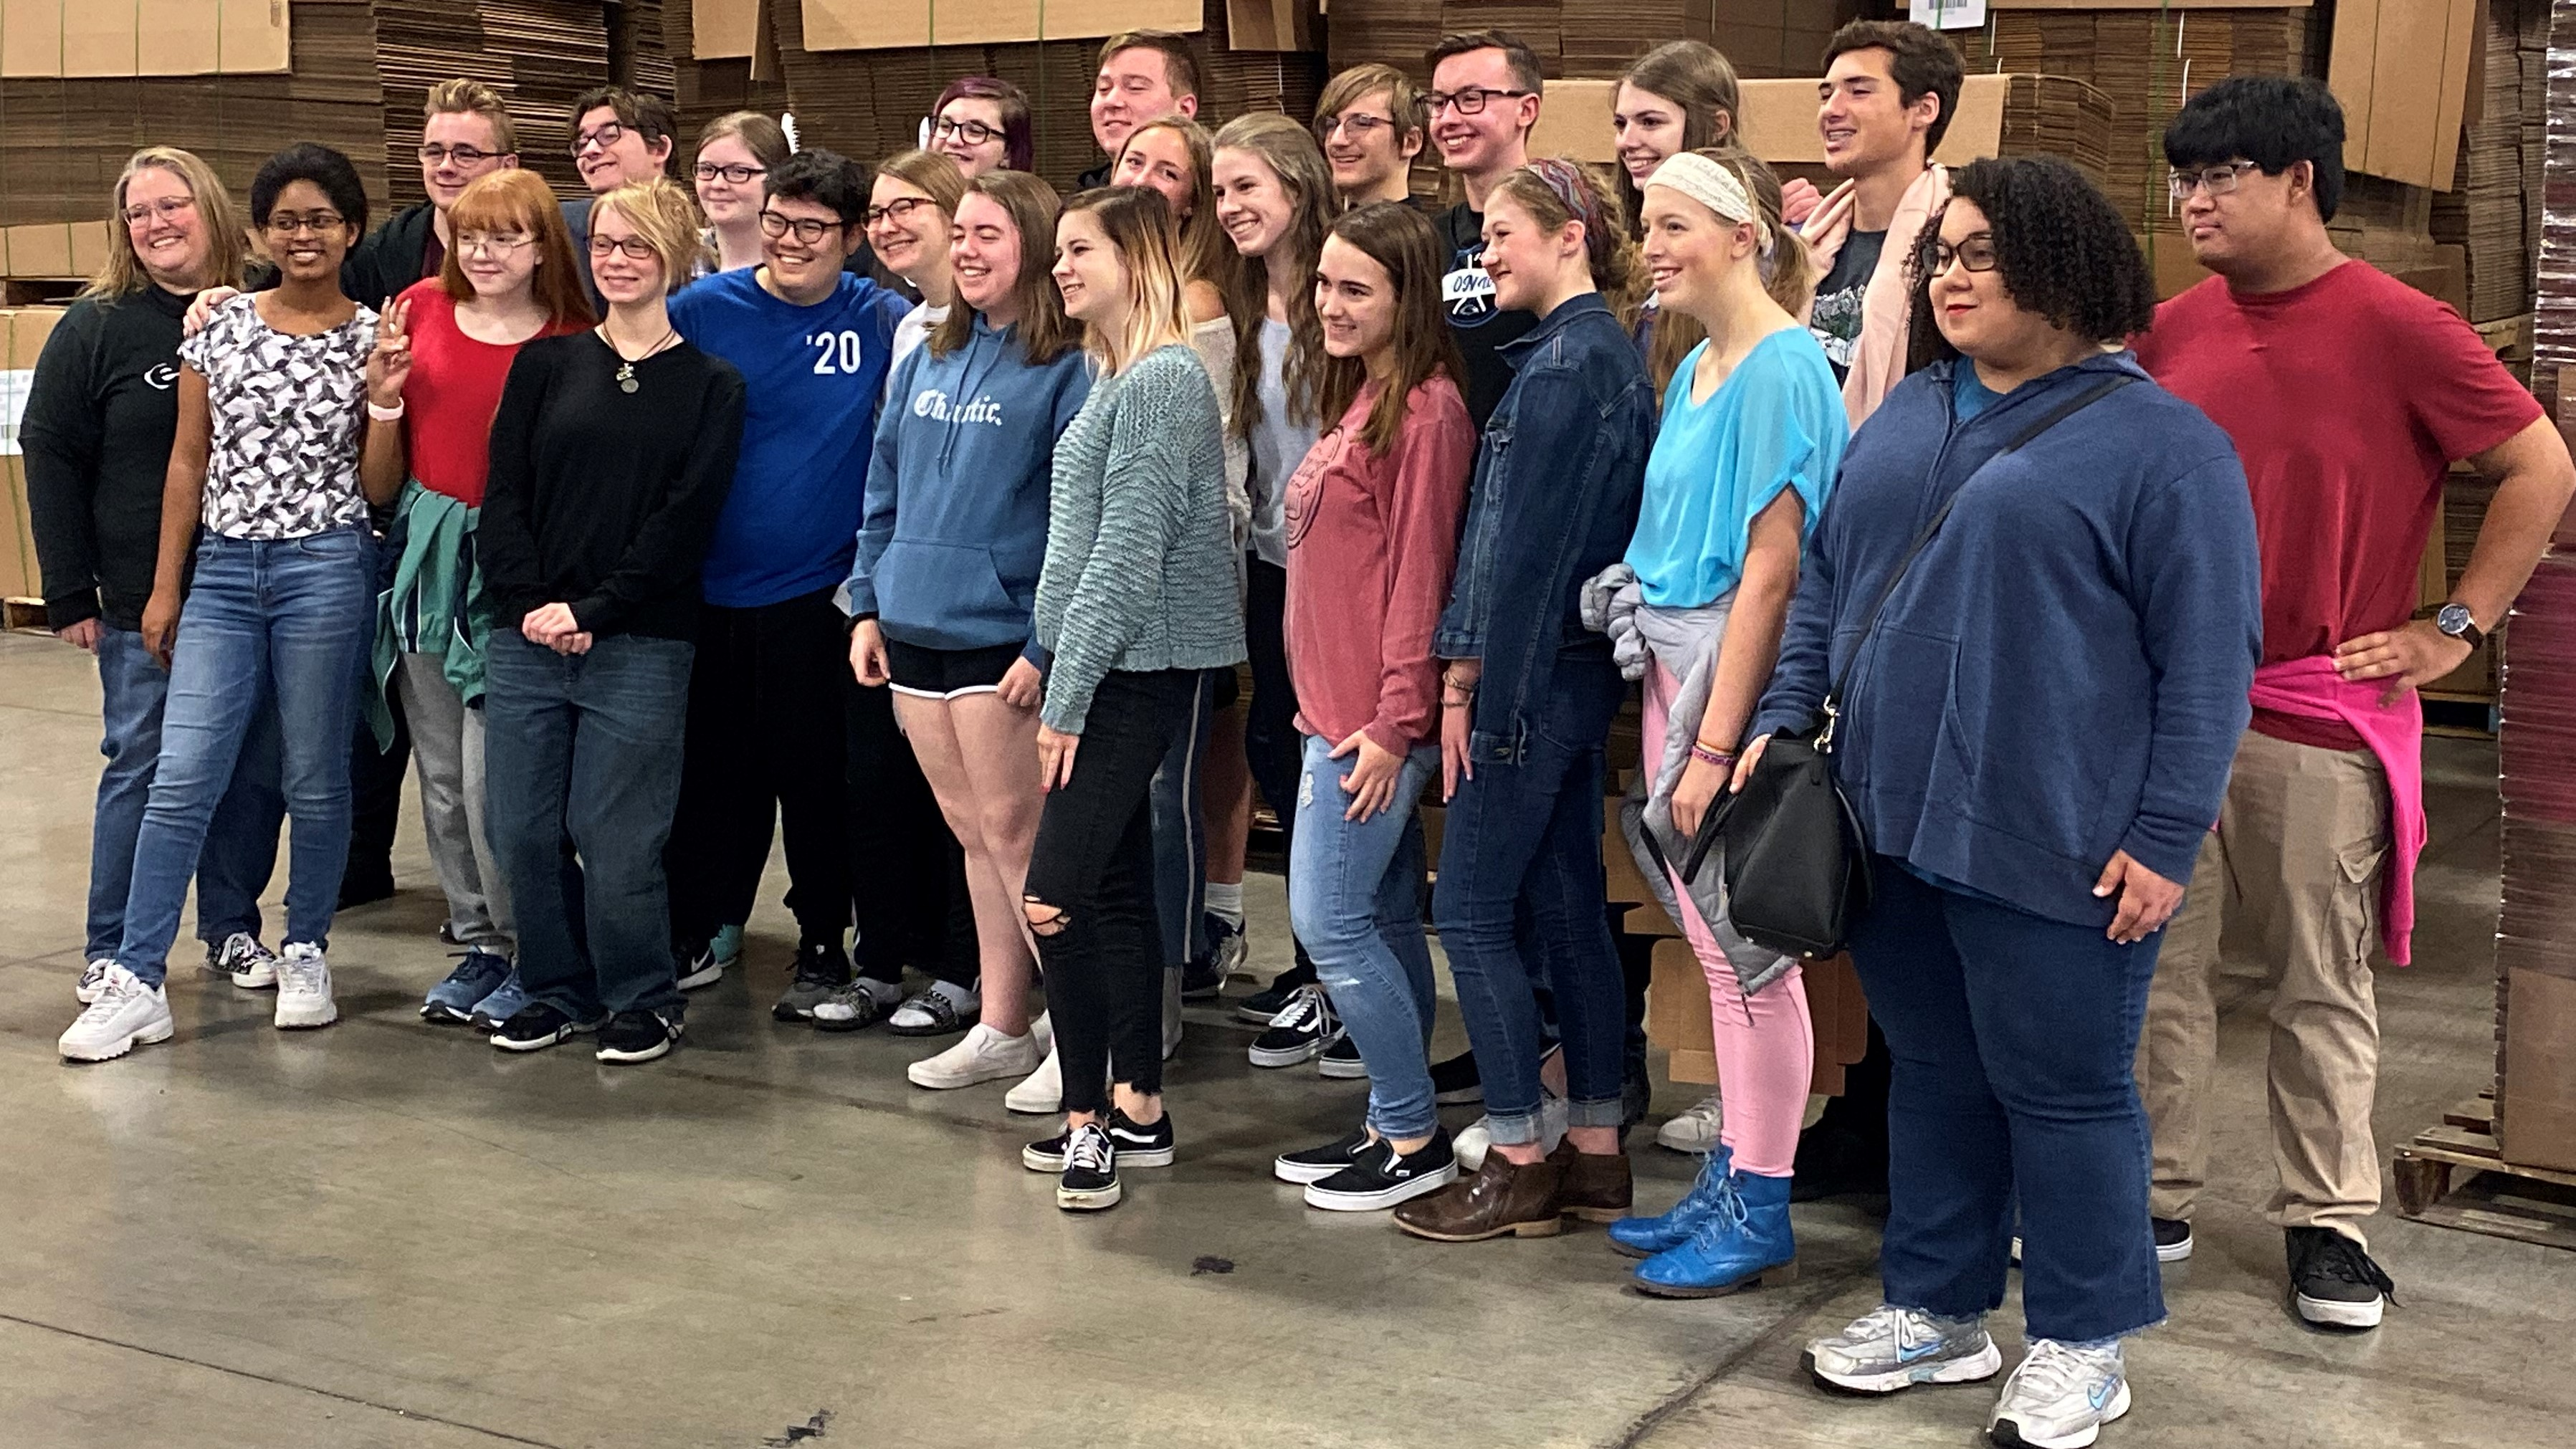 Olathe North-West High School Graphic Design students standing in front of stacks of corrugated